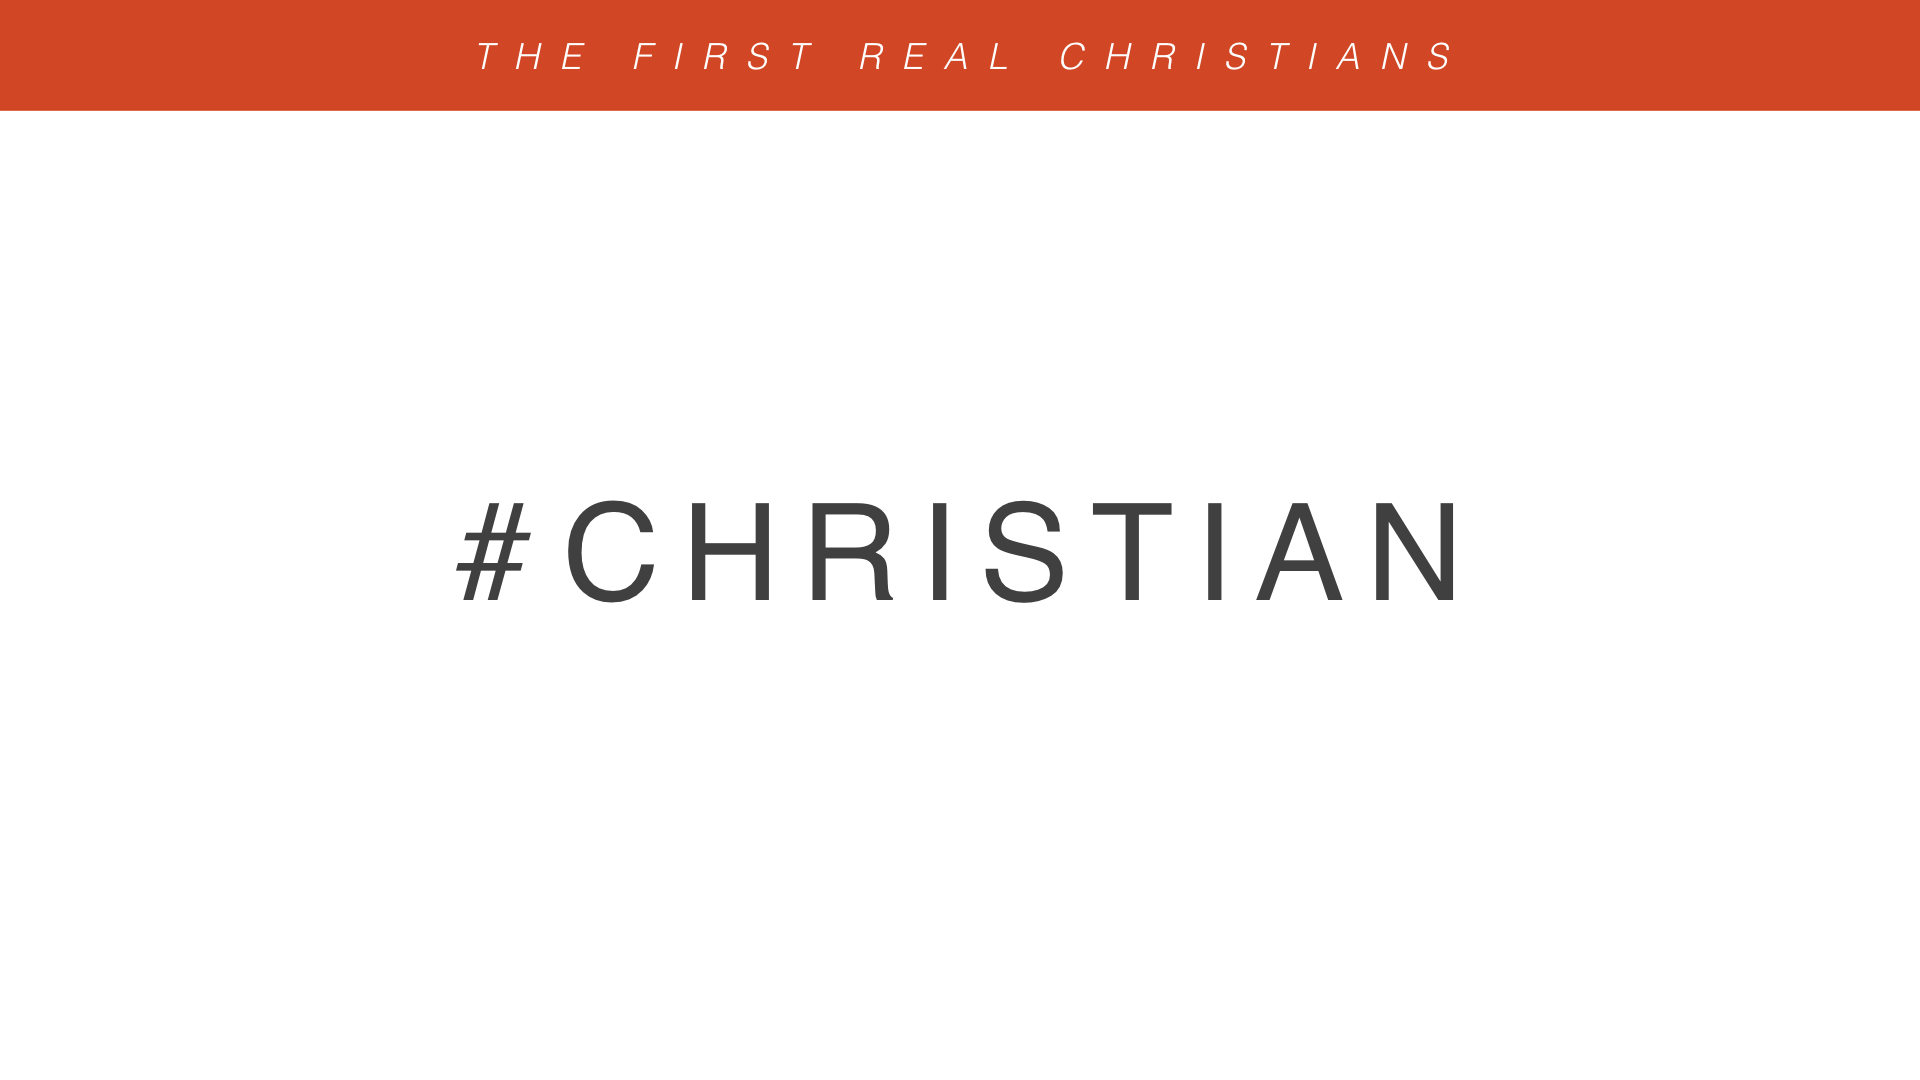 Real Christianity - Week 3 - The First Real Christians copy.017.jpeg